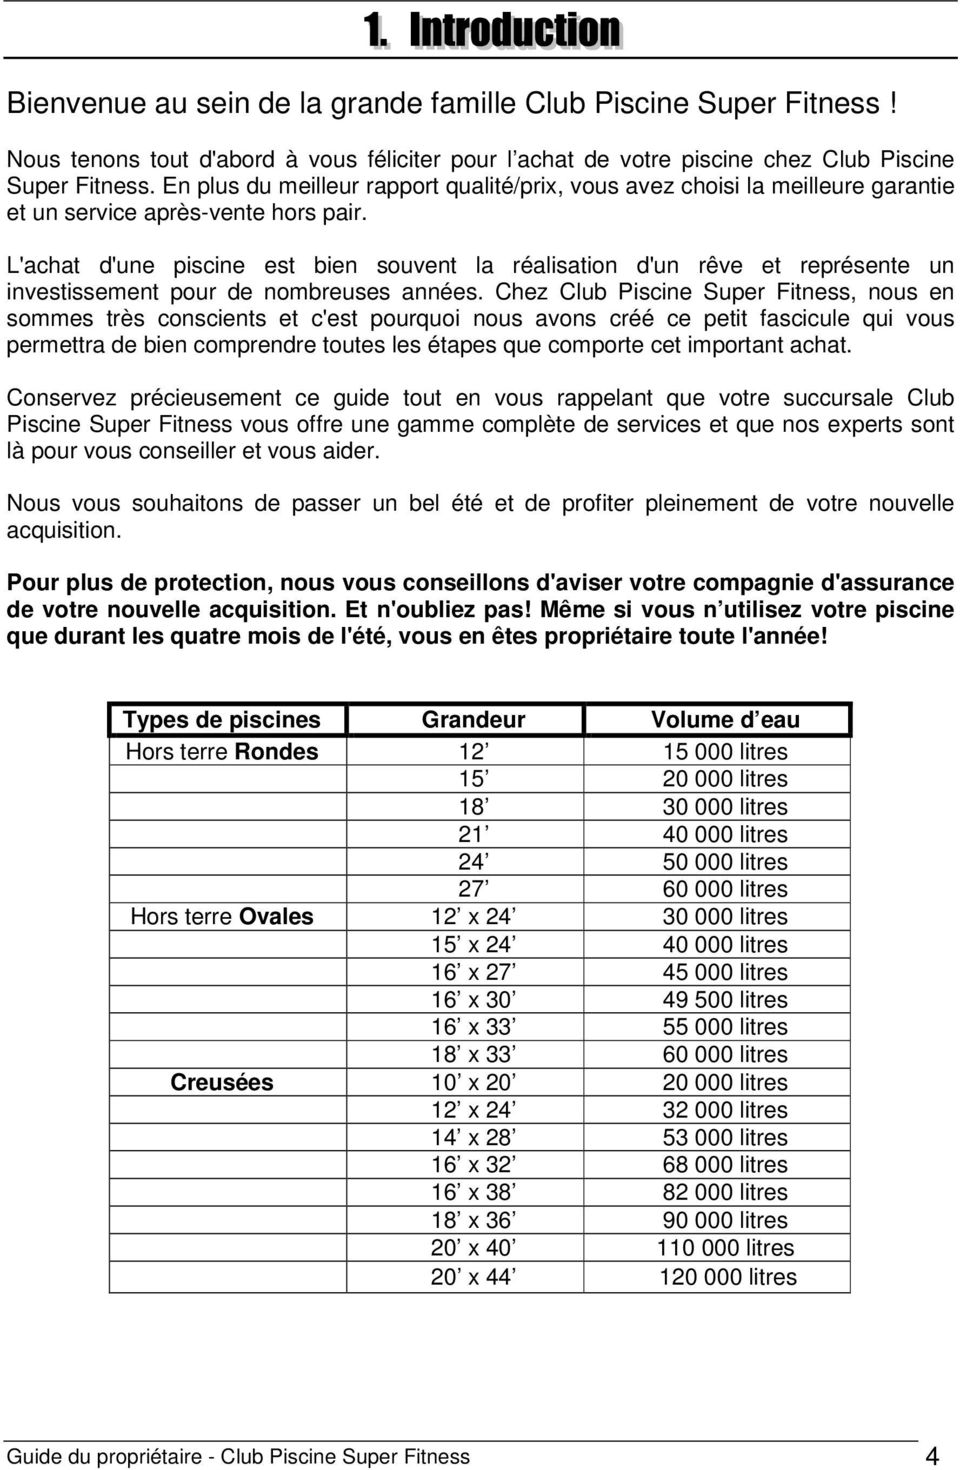 Guide Du Proprietaire Club Piscine Super Fitness 1 Pdf